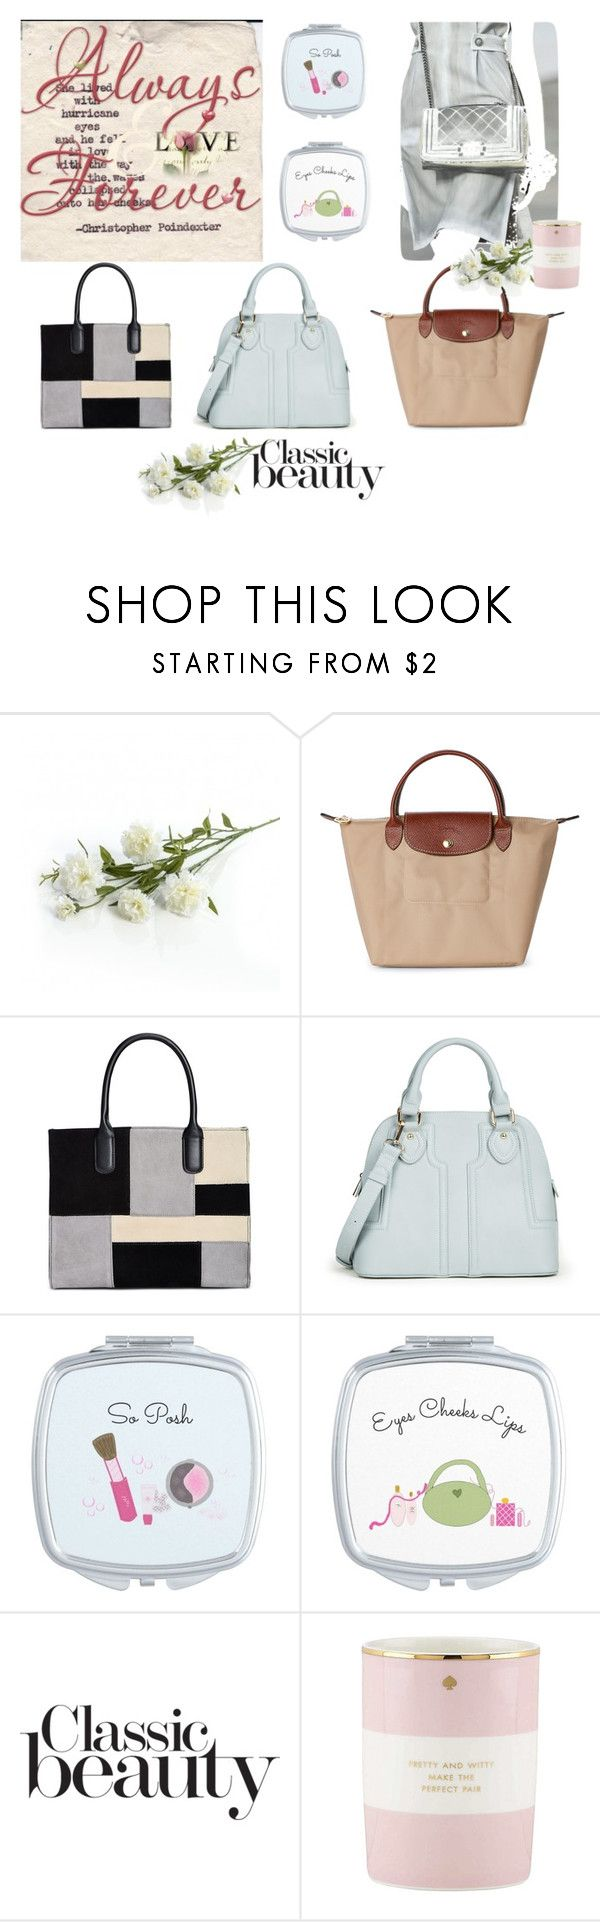 """Satchels"" by fit4you ❤ liked on Polyvore featuring Longchamp, Giani Bernini, Sole Society, Kate Spade, satchels, handbags, compactmirrors and springpurses"